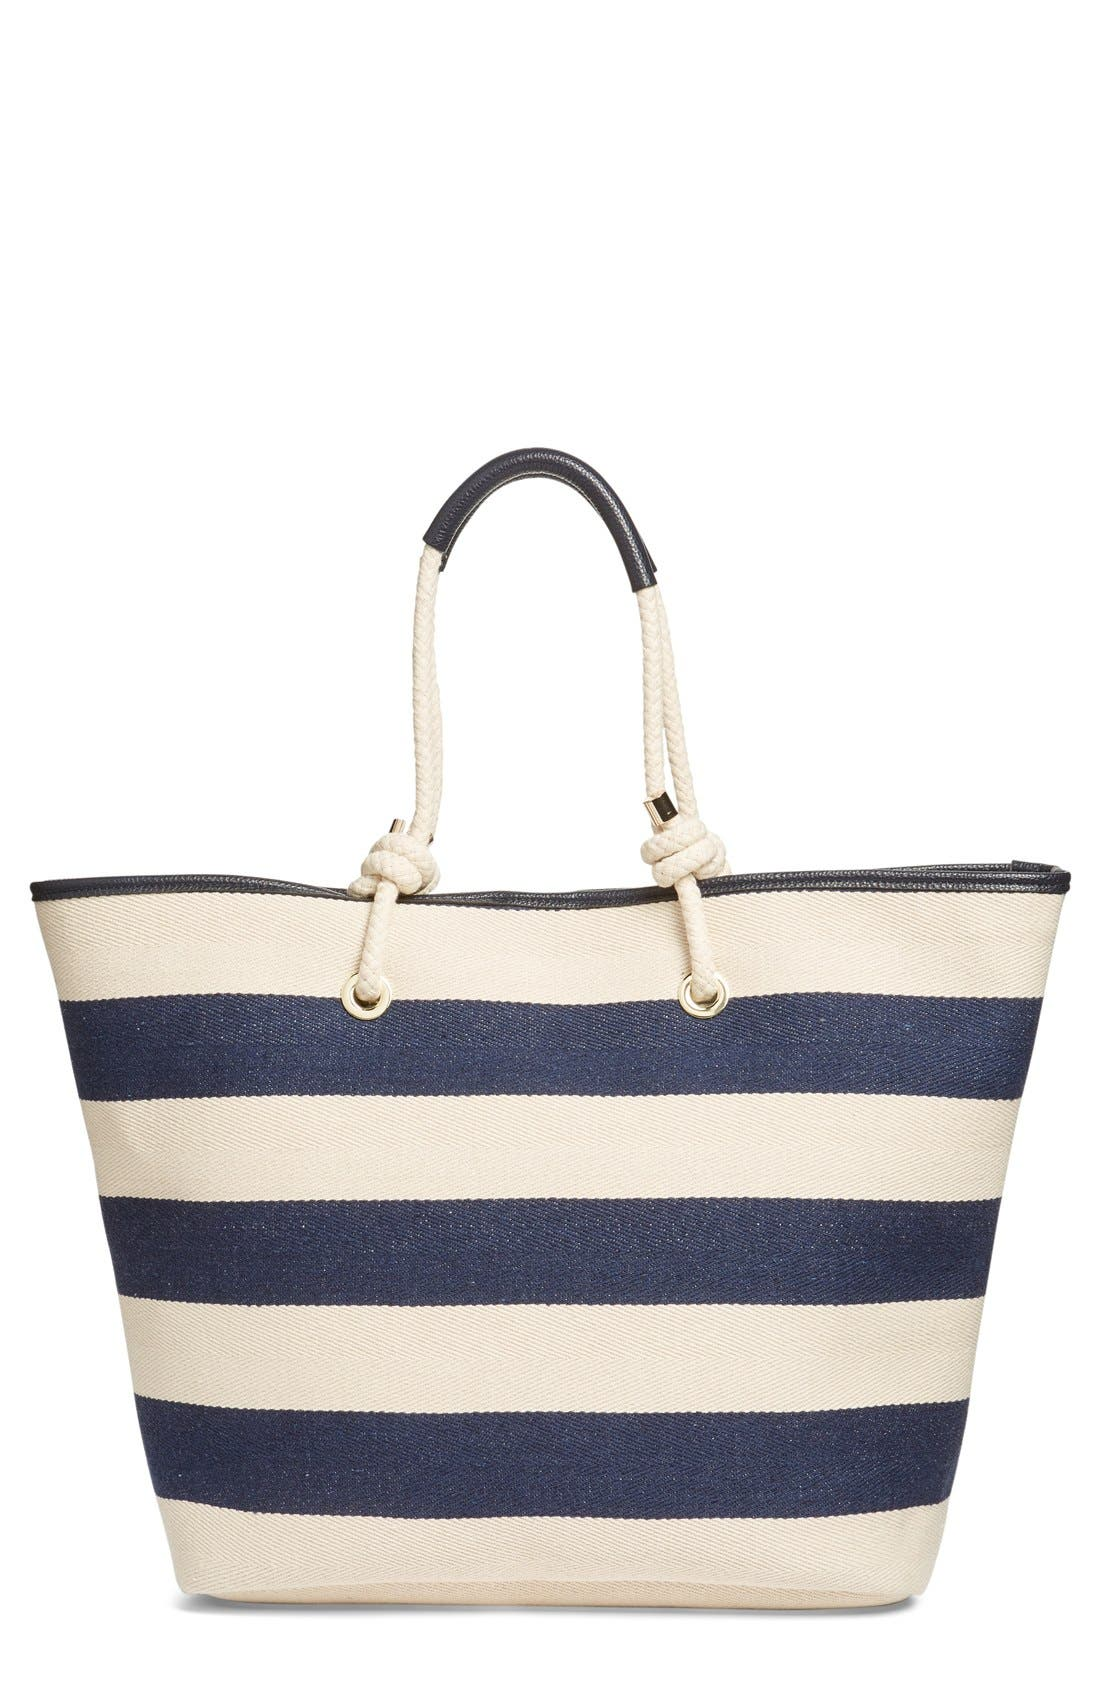 Main Image - Phase 3 Rope Handle Canvas Tote